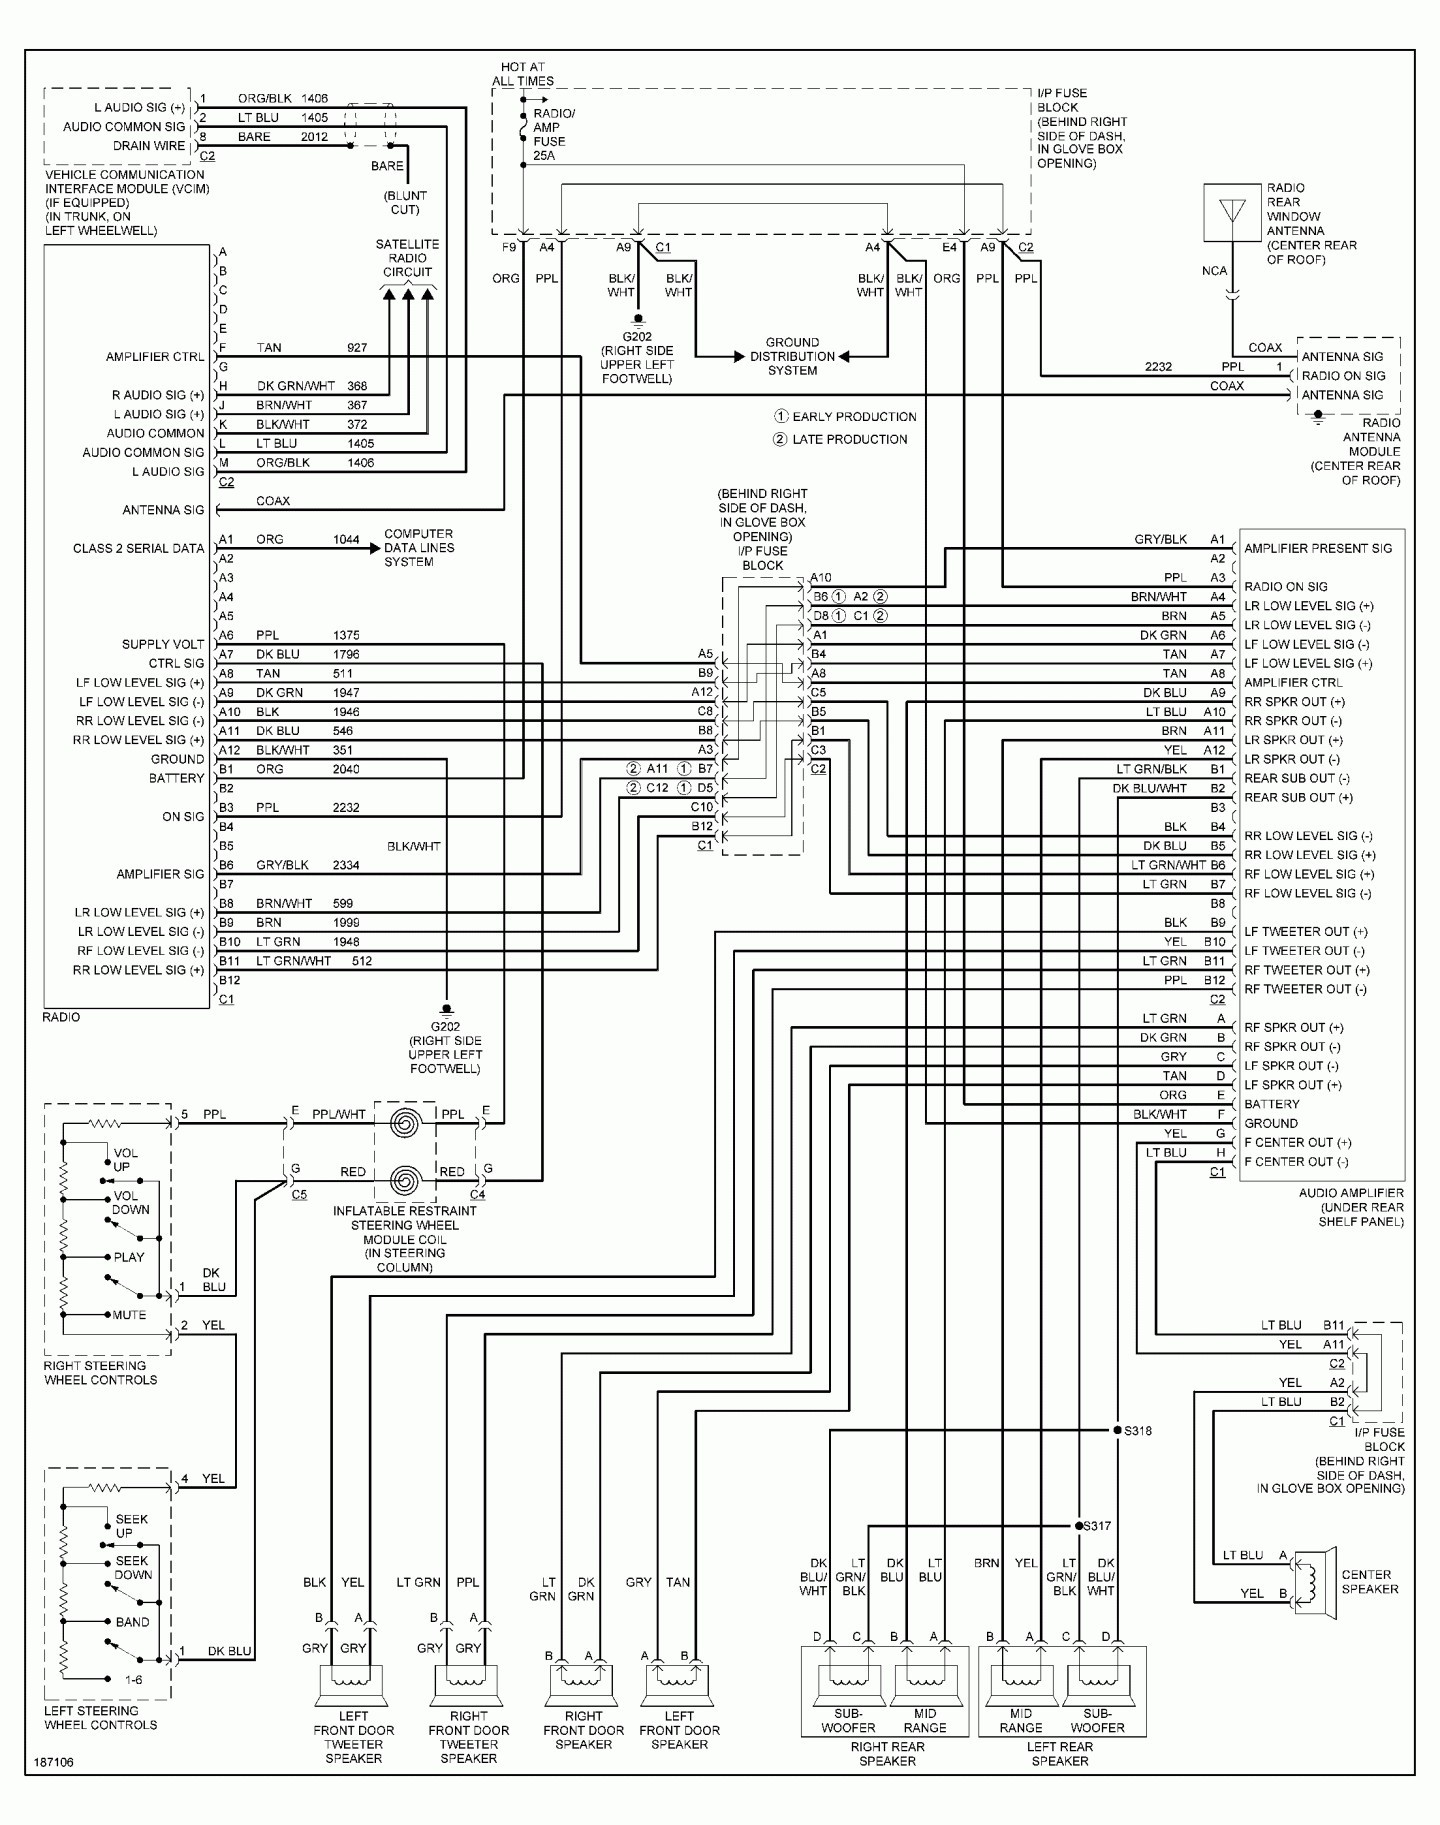 Awe Inspiring Vw Touran Wiring Diagram Wiring Diagram Data Schema Wiring 101 Breceaxxcnl